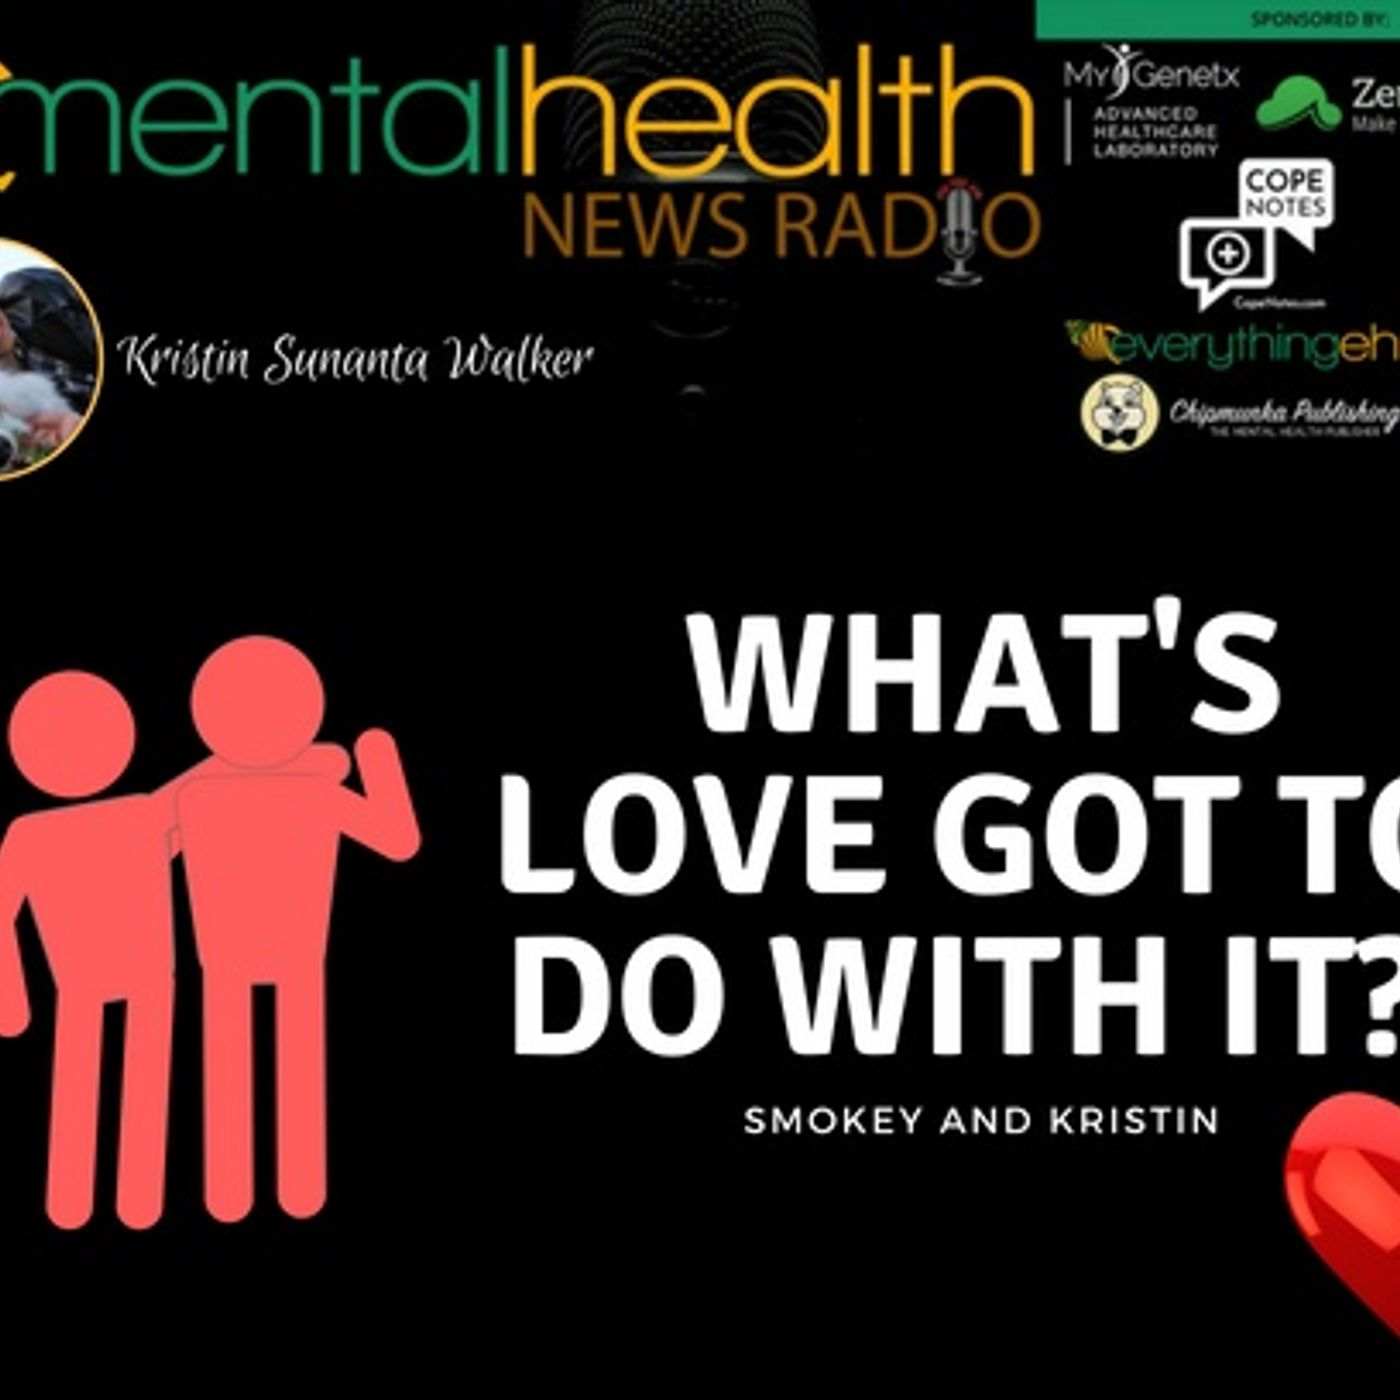 Mental Health News Radio - Smokey and Kristin: What's Love Got To Do With It?